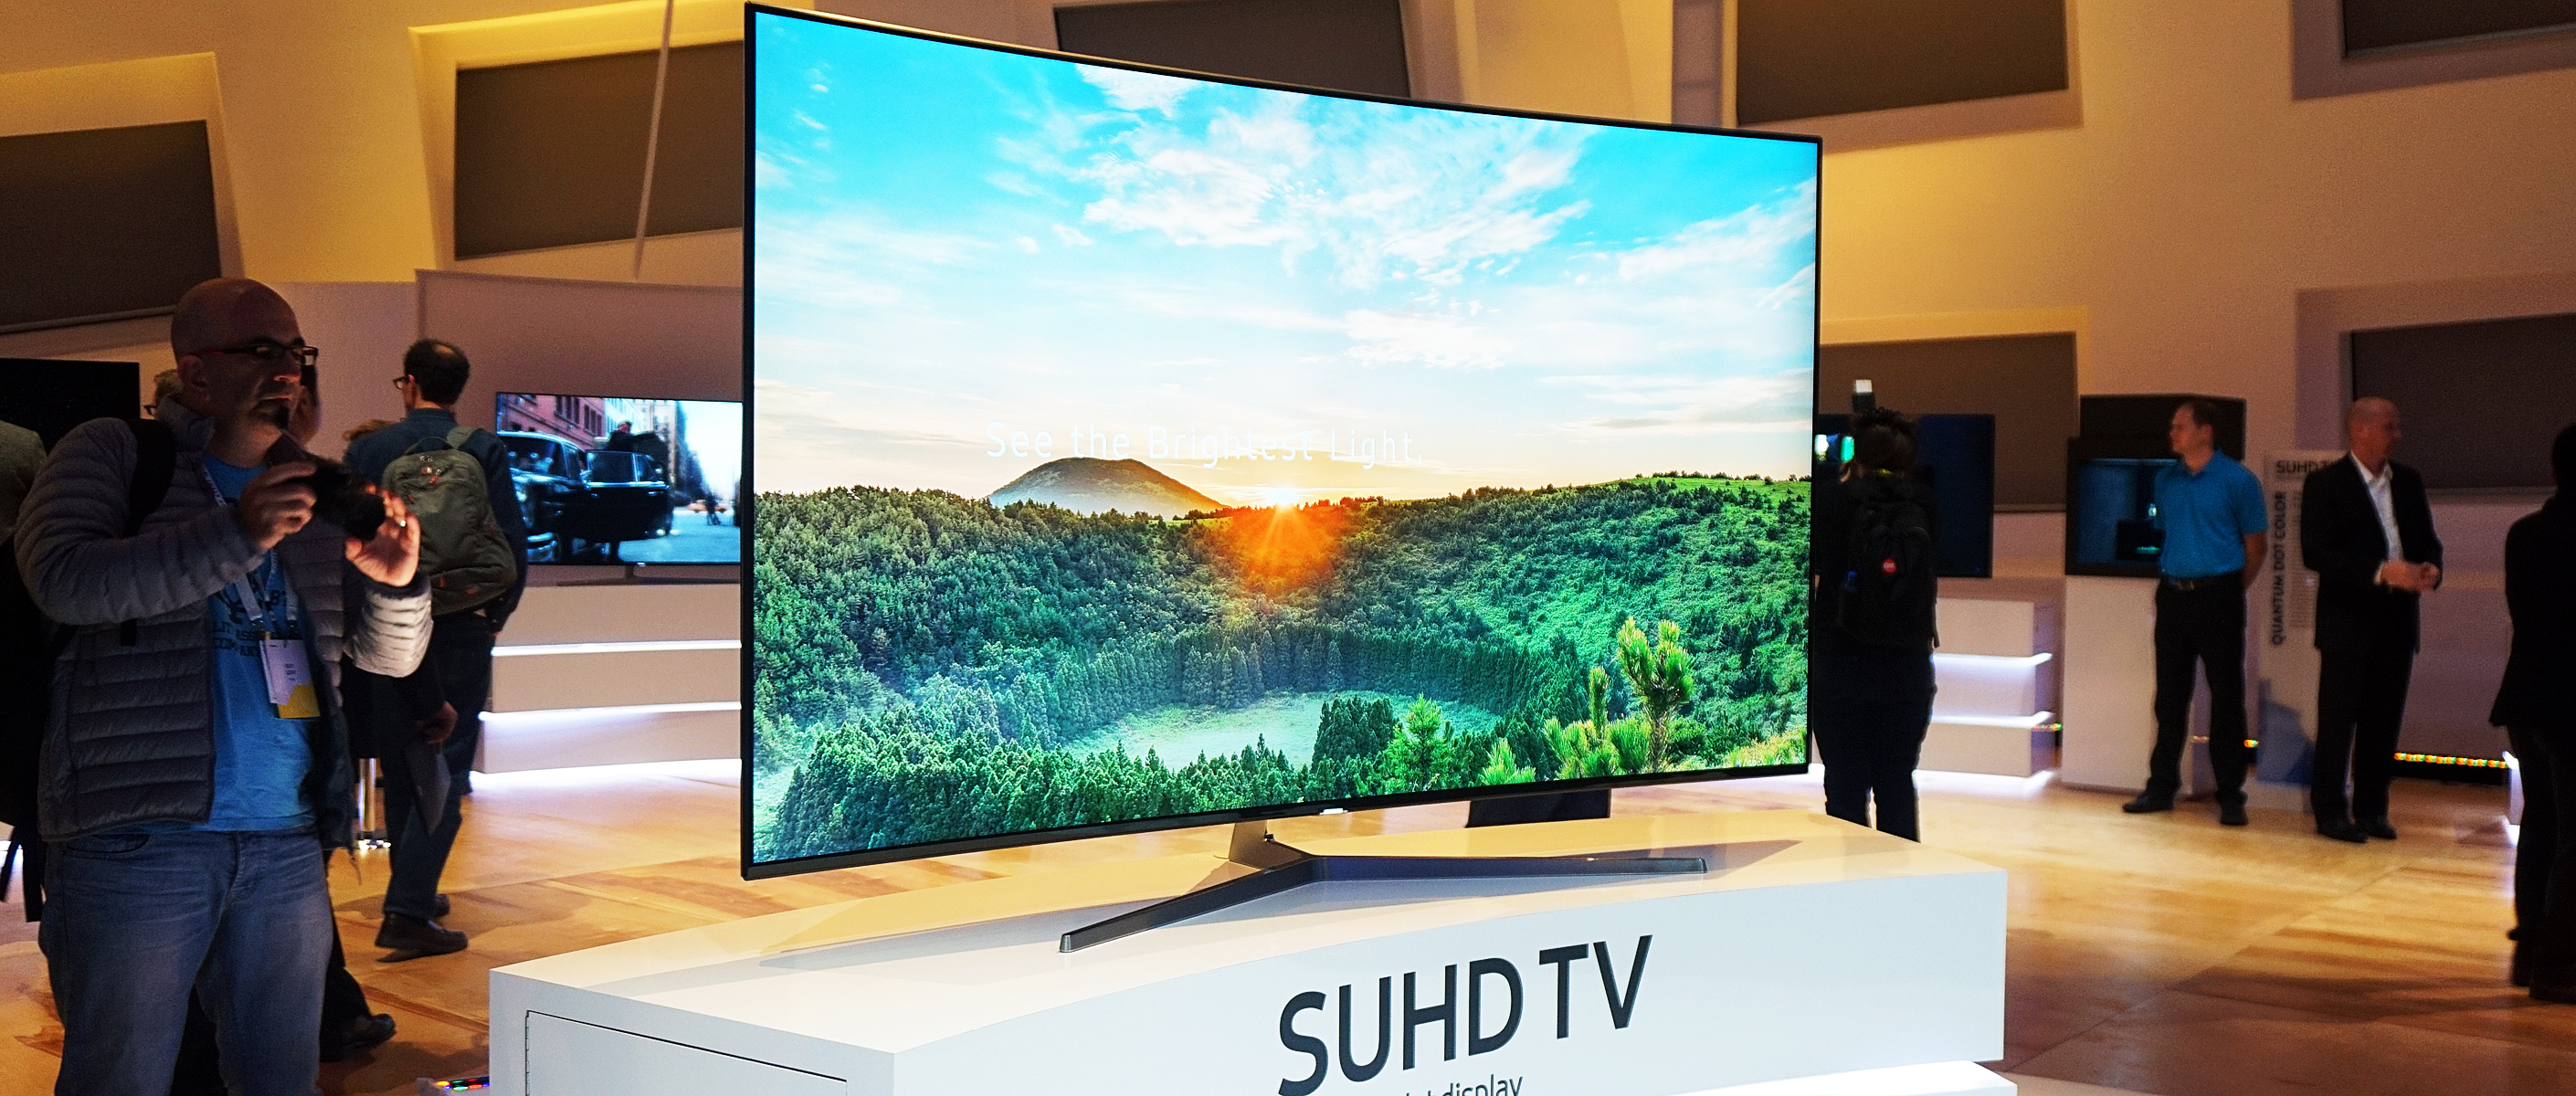 samsung ks9500 series suhd tv first impressions review televisions. Black Bedroom Furniture Sets. Home Design Ideas